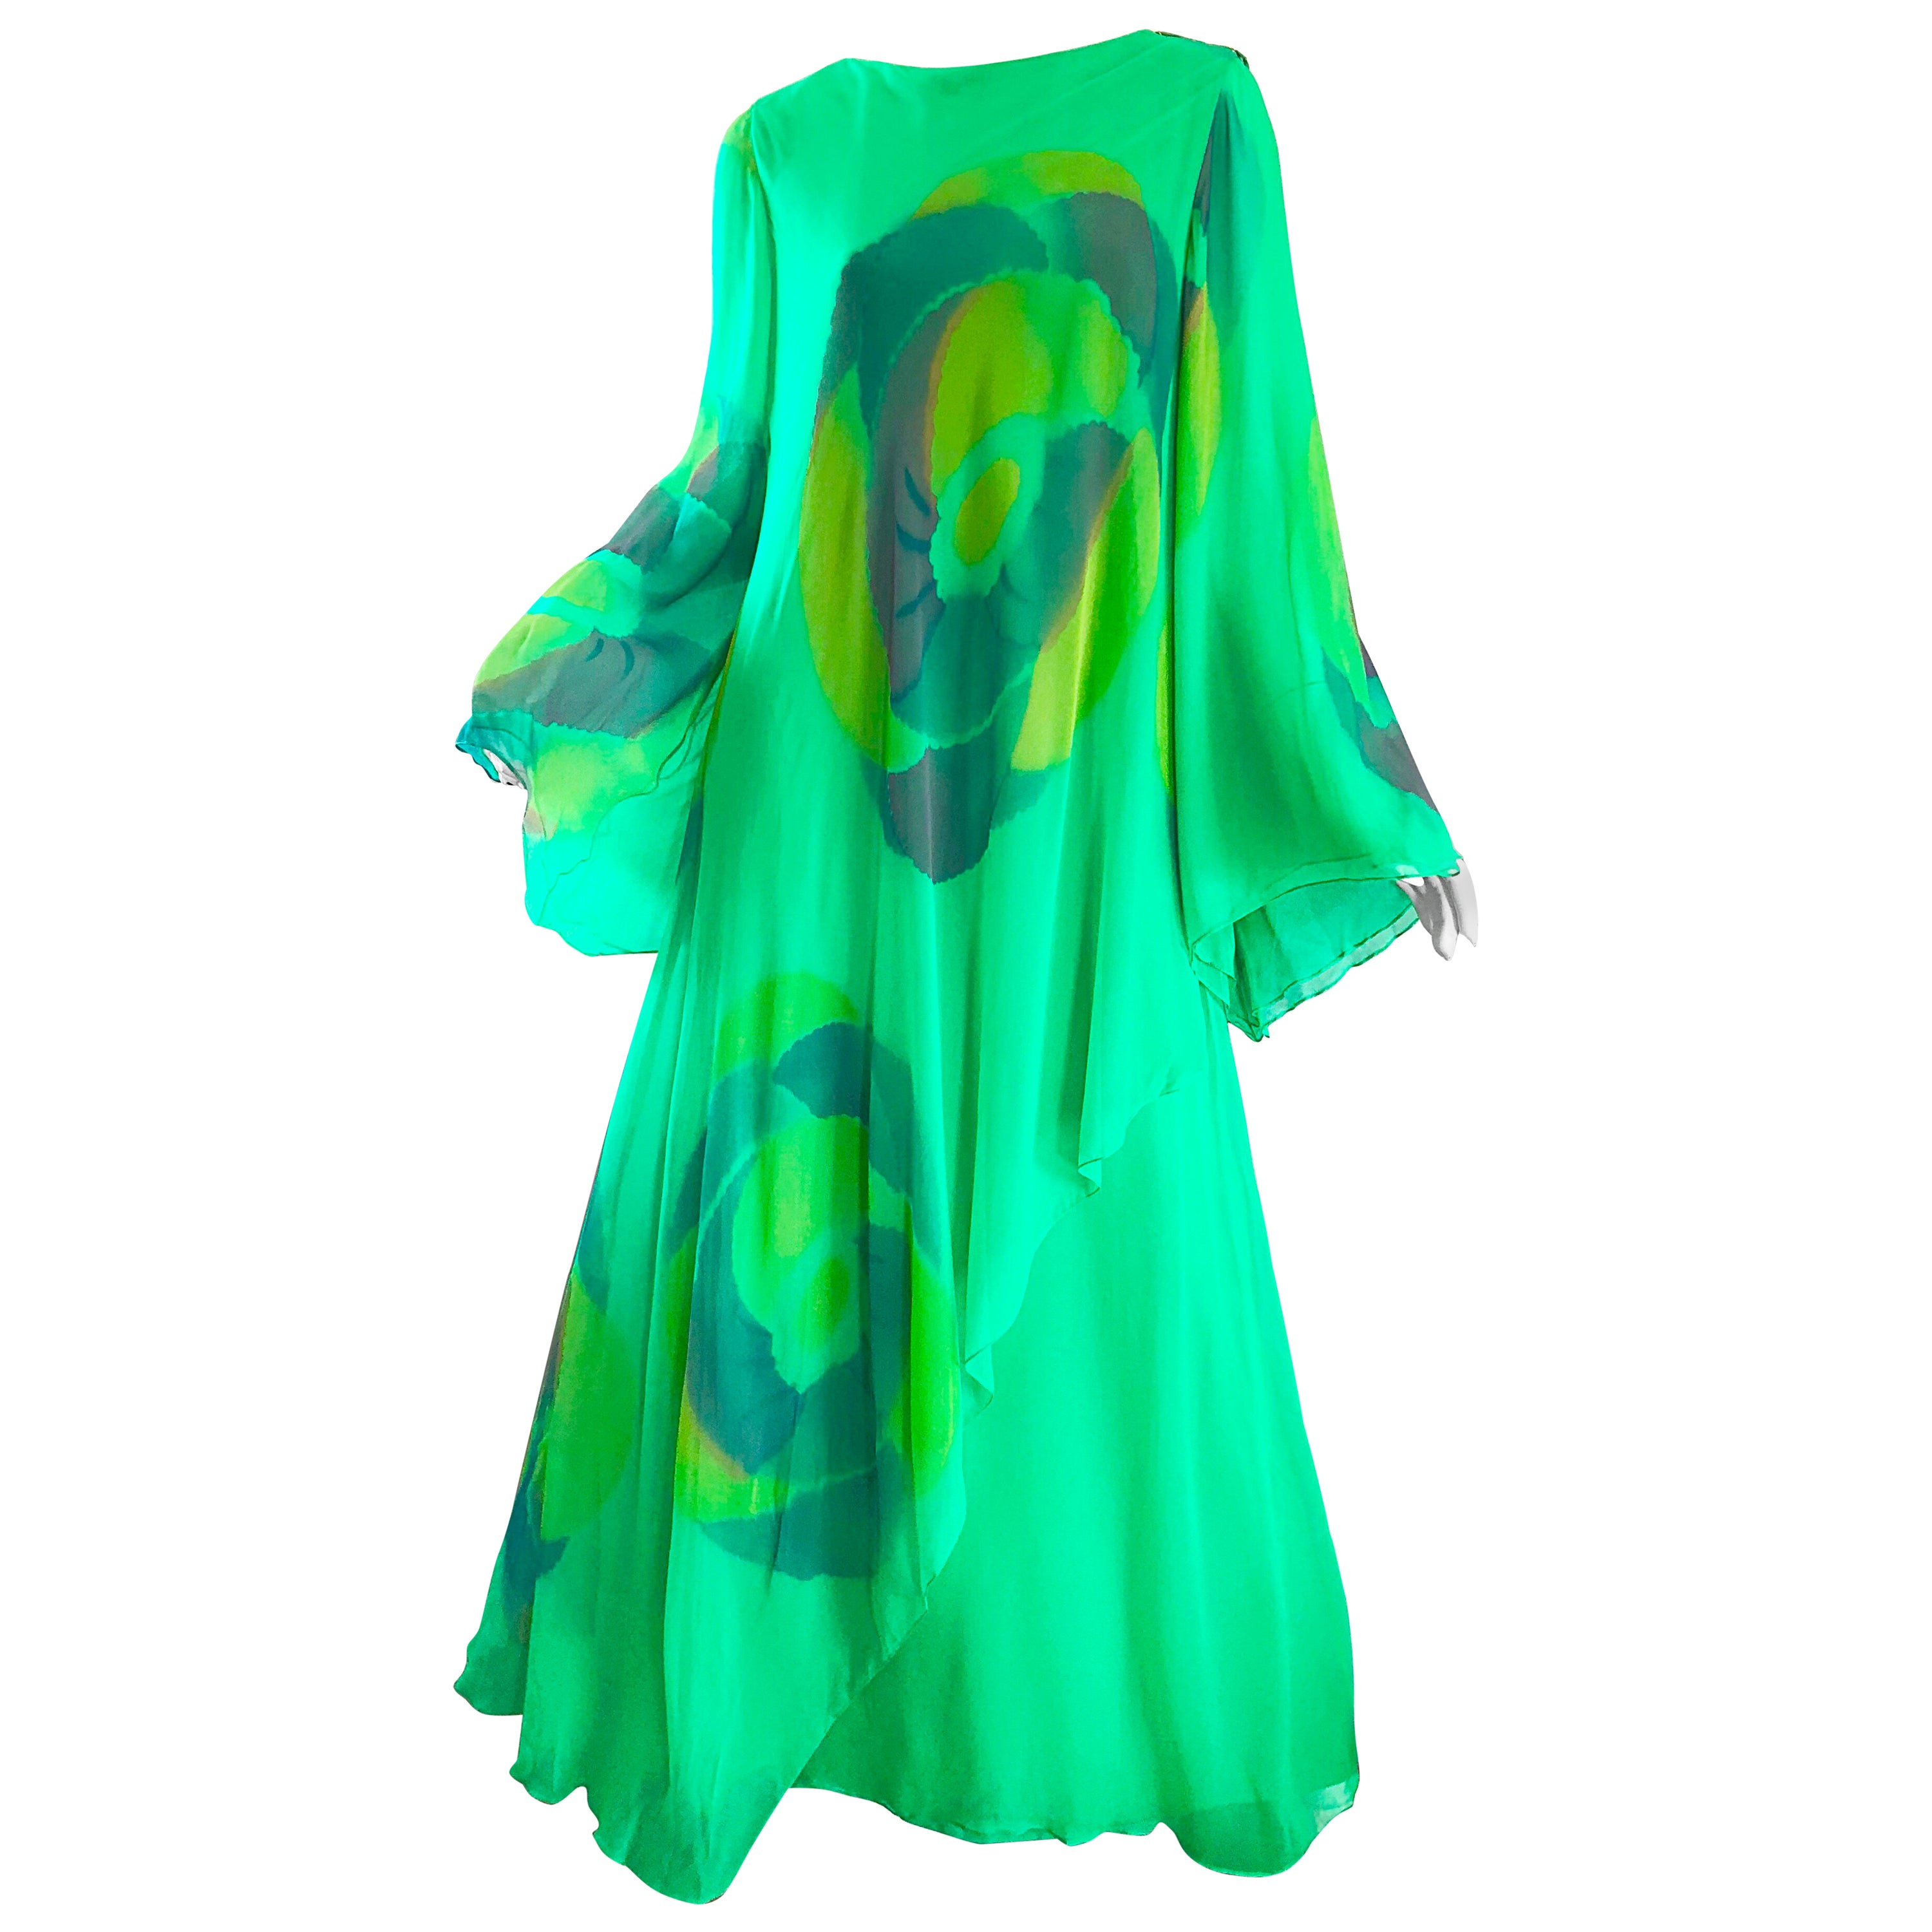 Vintage Travillia Couture 1970s Hand Painted Kelly Green Silk Chiffon 70s Gown